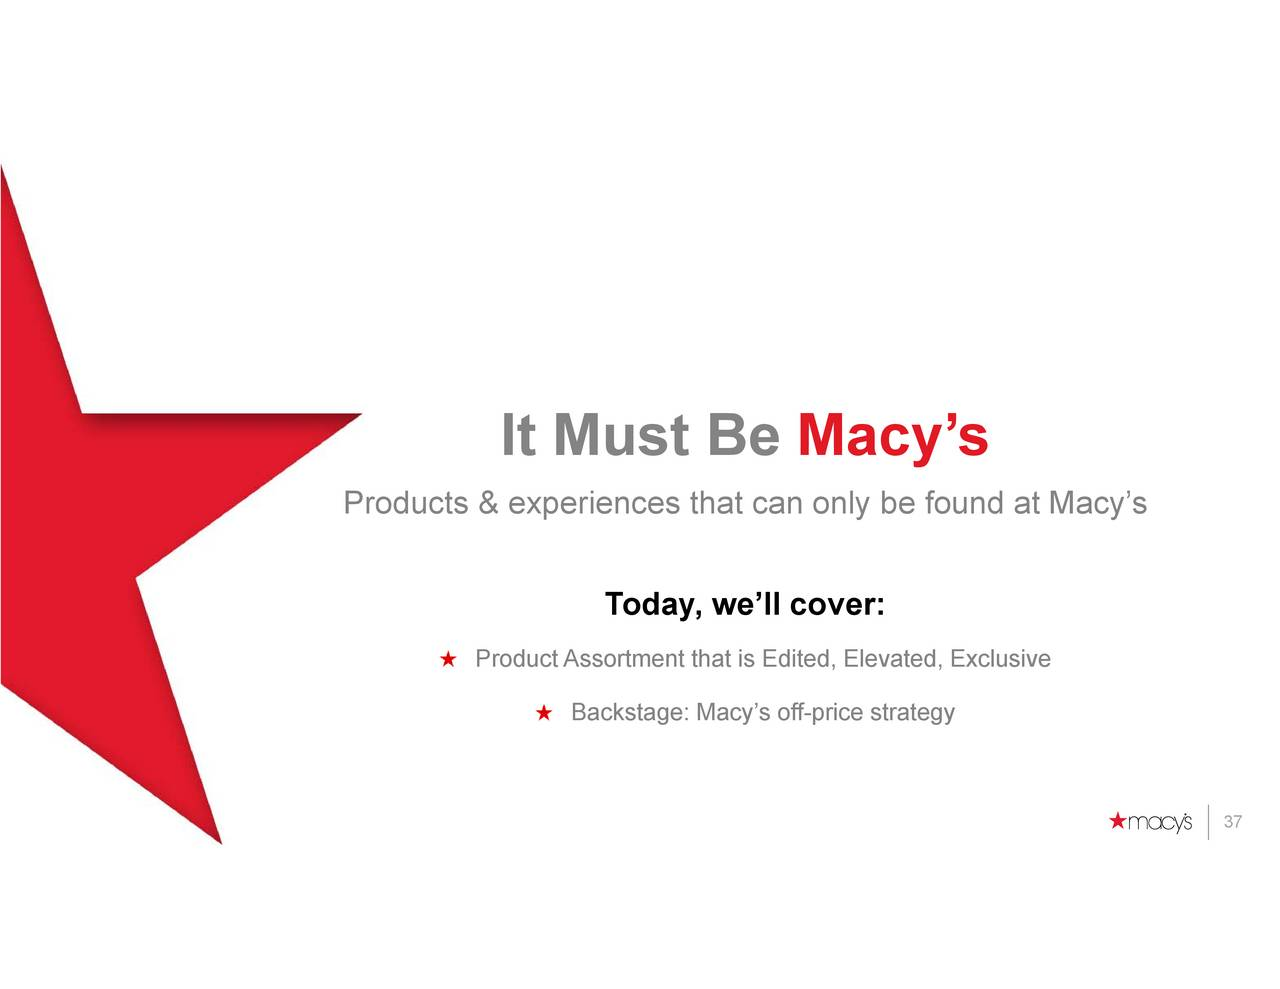 analysis strategy macys Model analysis (macy's) strategy: local shoppers of the stores that were acquired weren't impressed with the many changes taking place within federated.